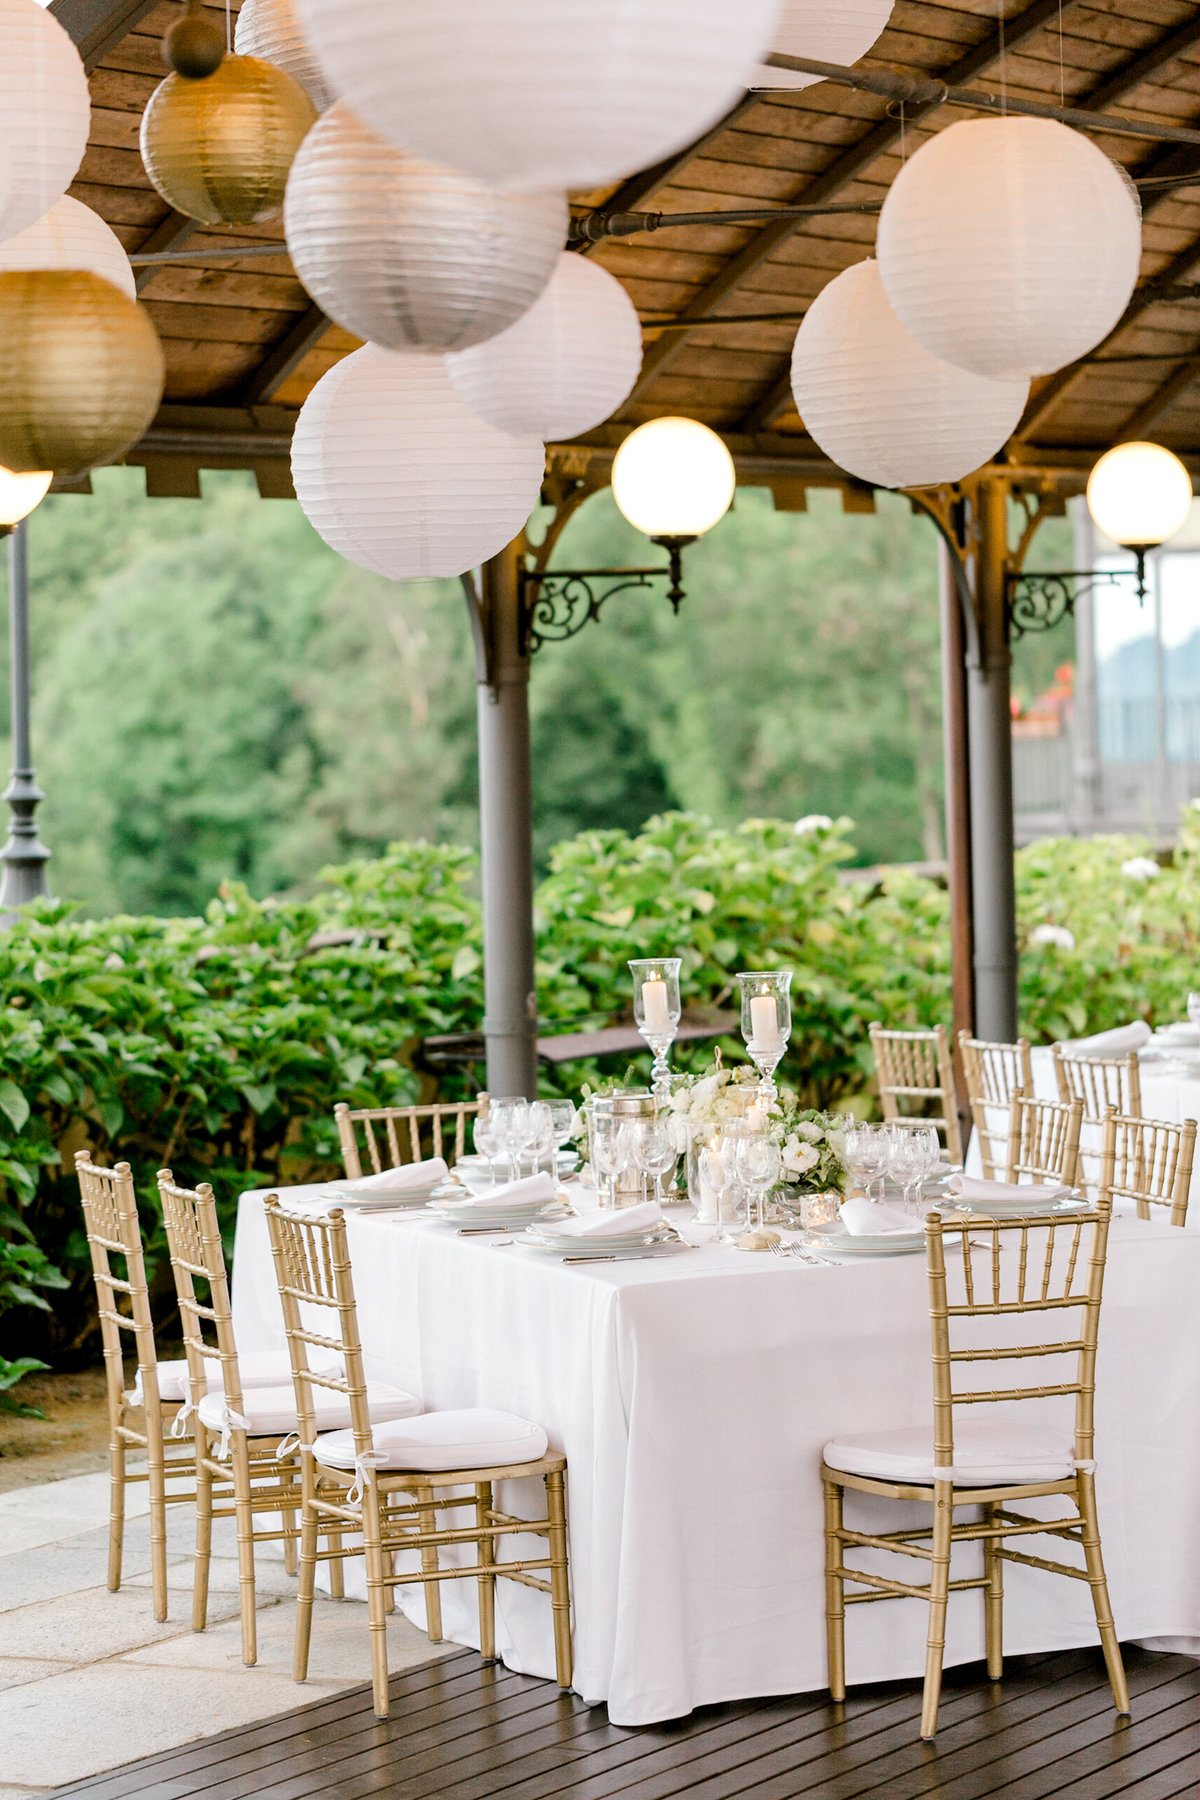 Destination-Vineyard-Italian-Wedding-New-York-Photographer-Jessica-Haley-Photo-47